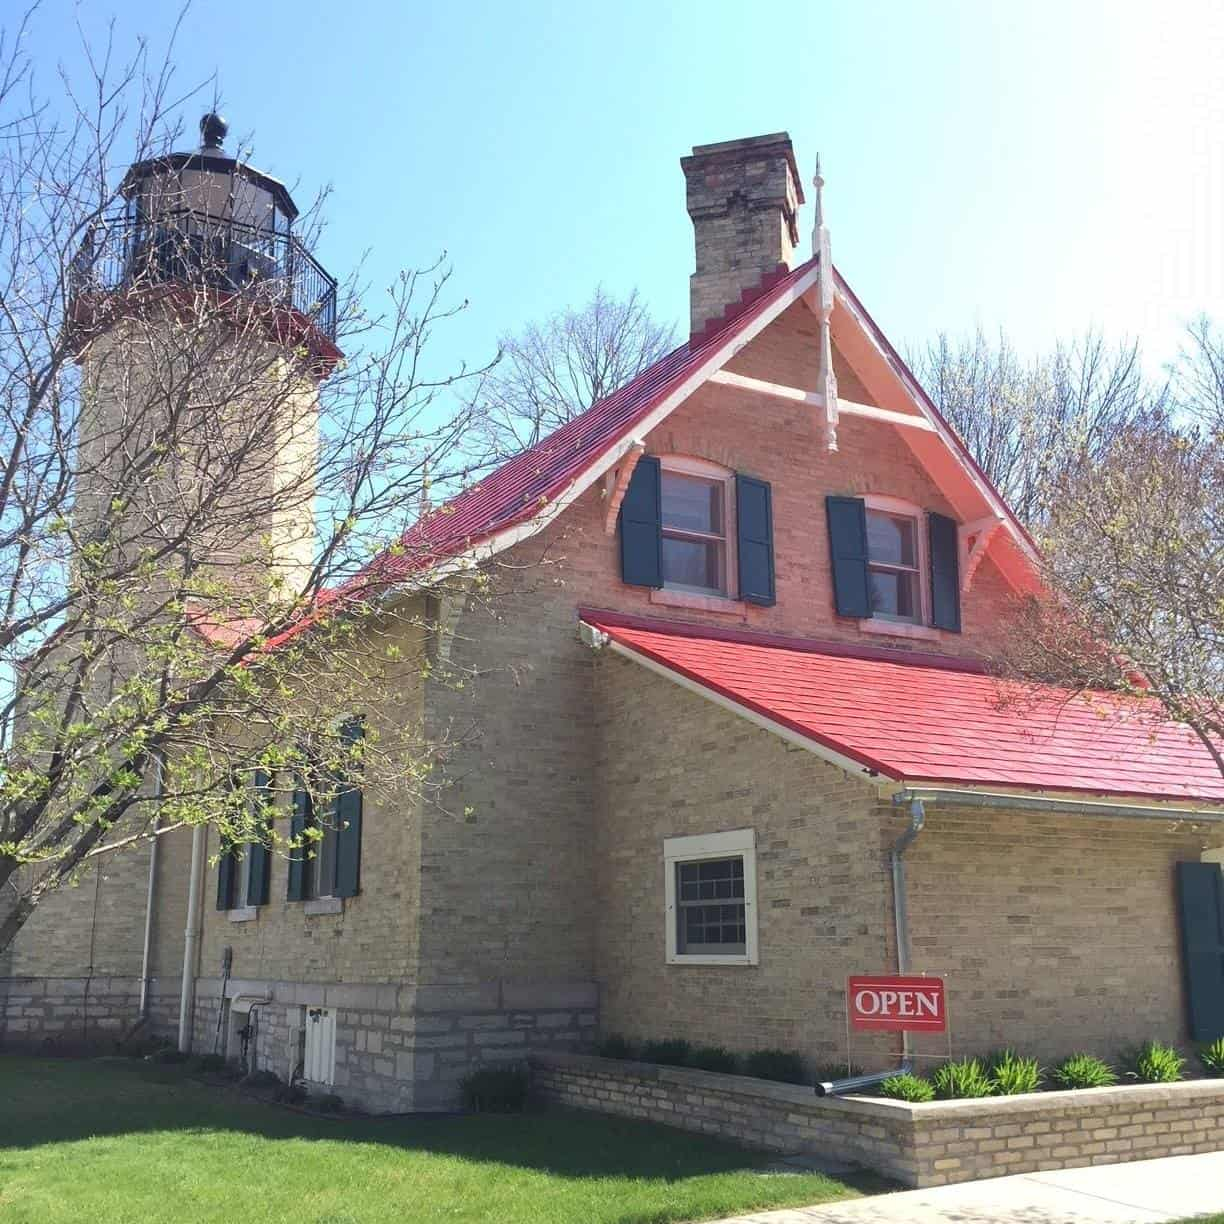 McGulpin Point Lighthouse - by McGulpin Point Lighthouse